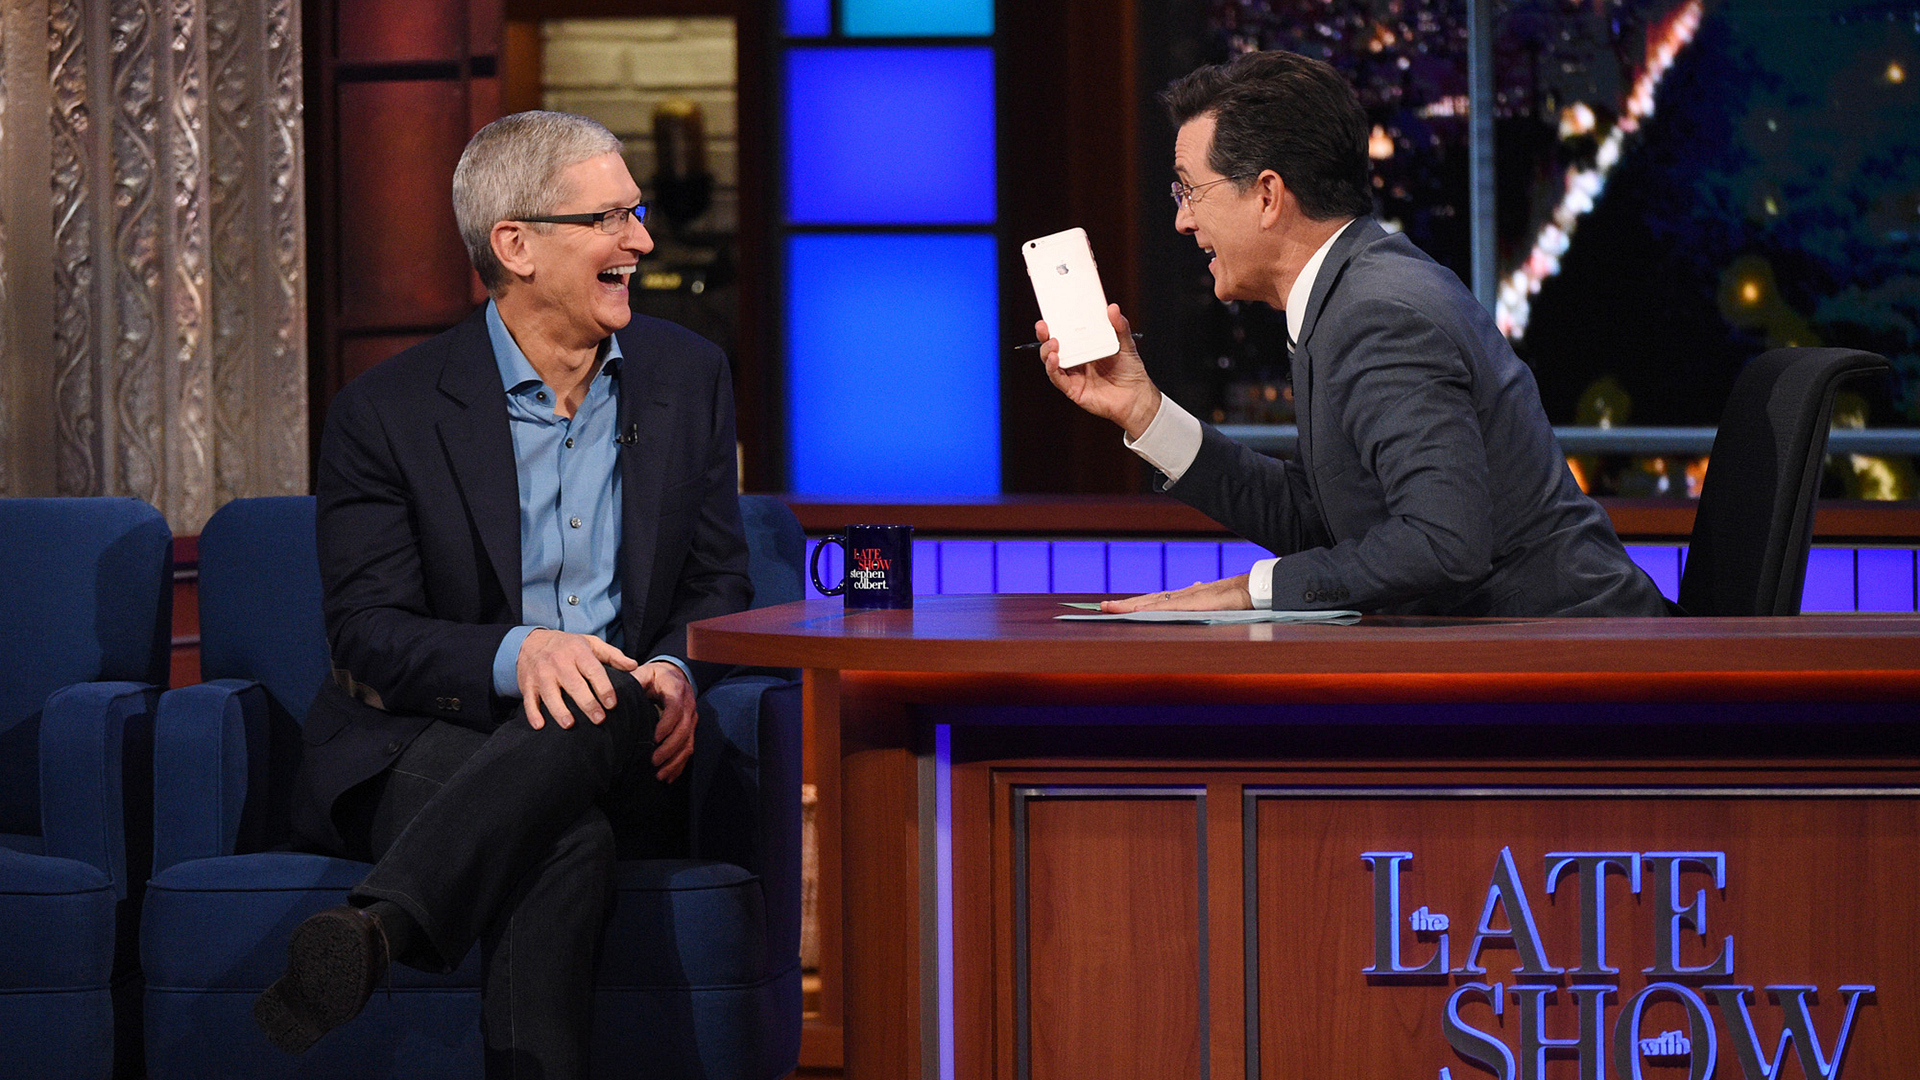 Tim Cook and Stephen Colbert